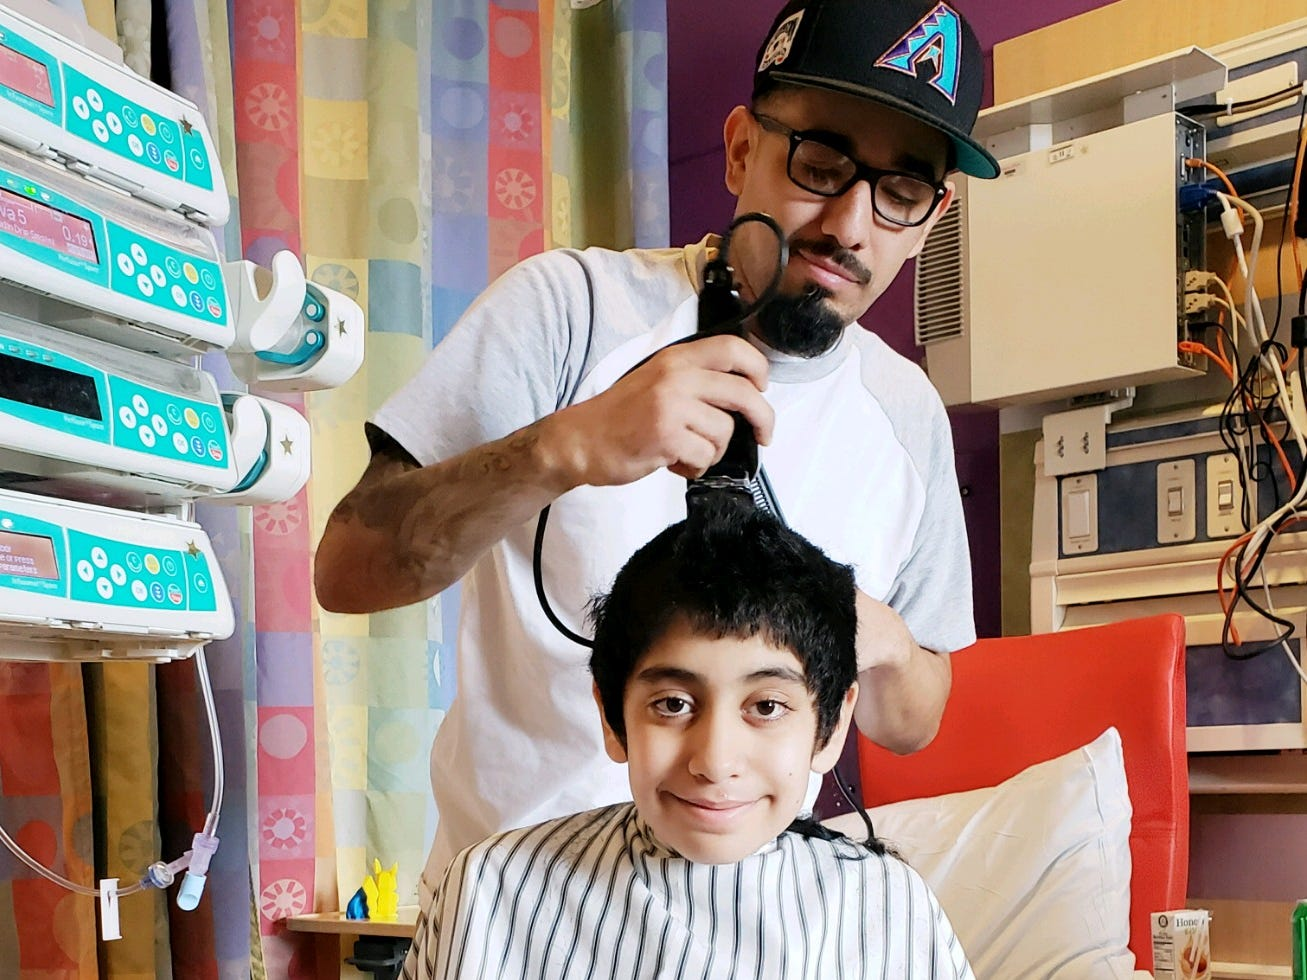 Gabriel Gonzalez was at Phoenix Children's Hospital for almost four months awaiting a heart transplant. His uncle Paul Varela gives him a much-needed haircut.